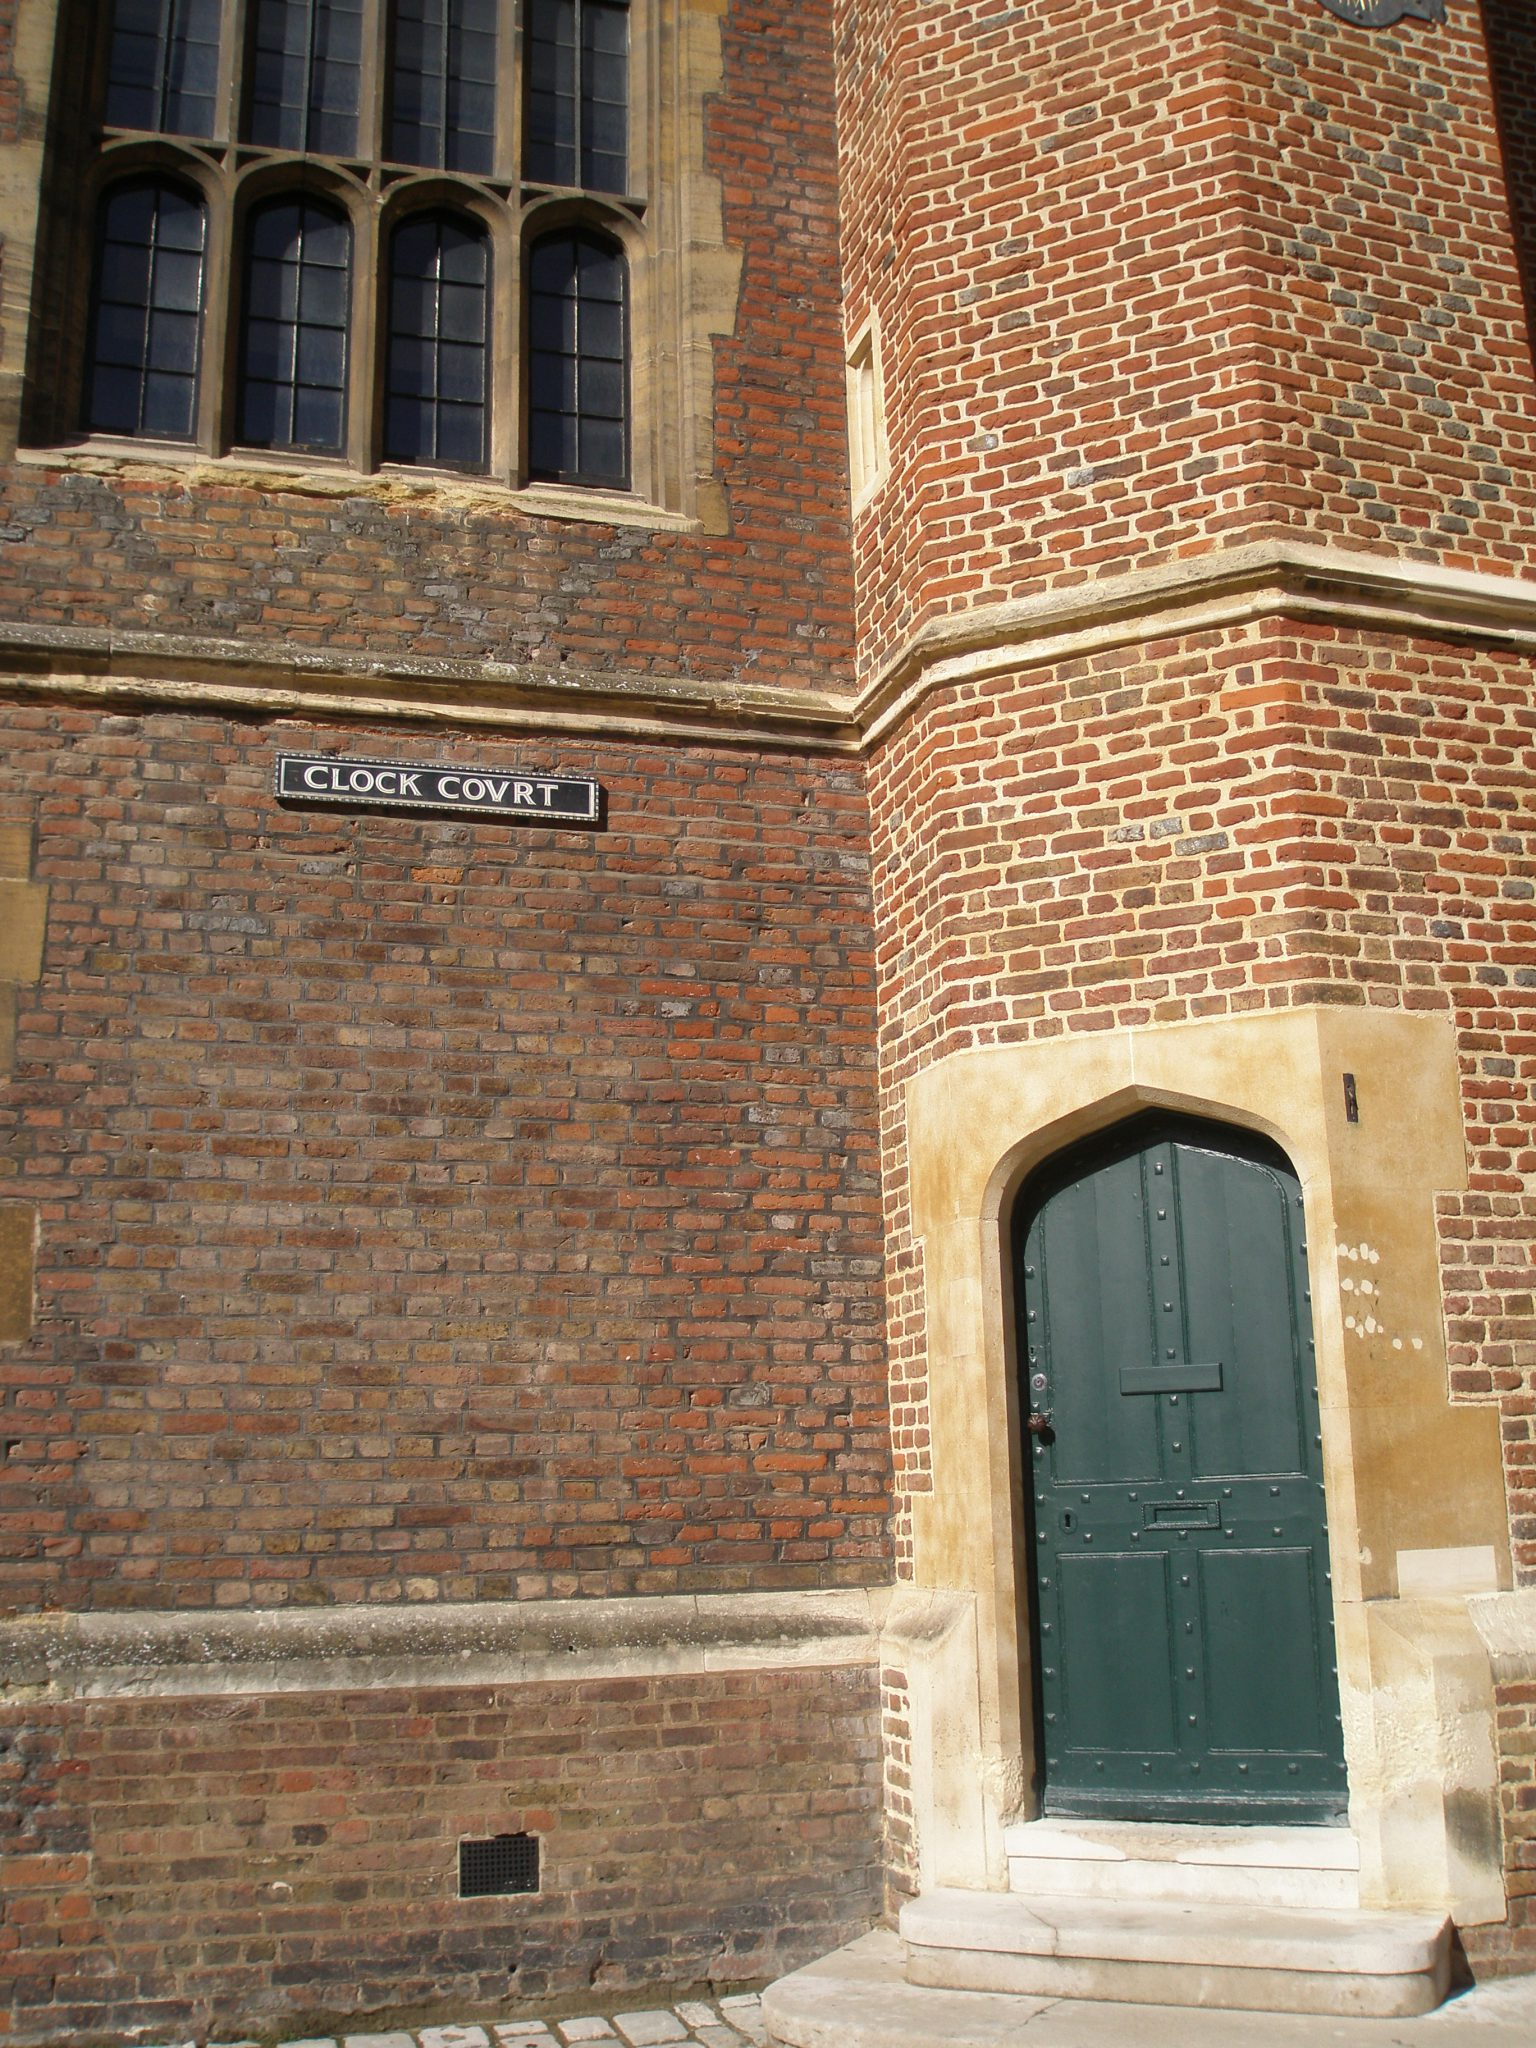 Doorway in Clock Court